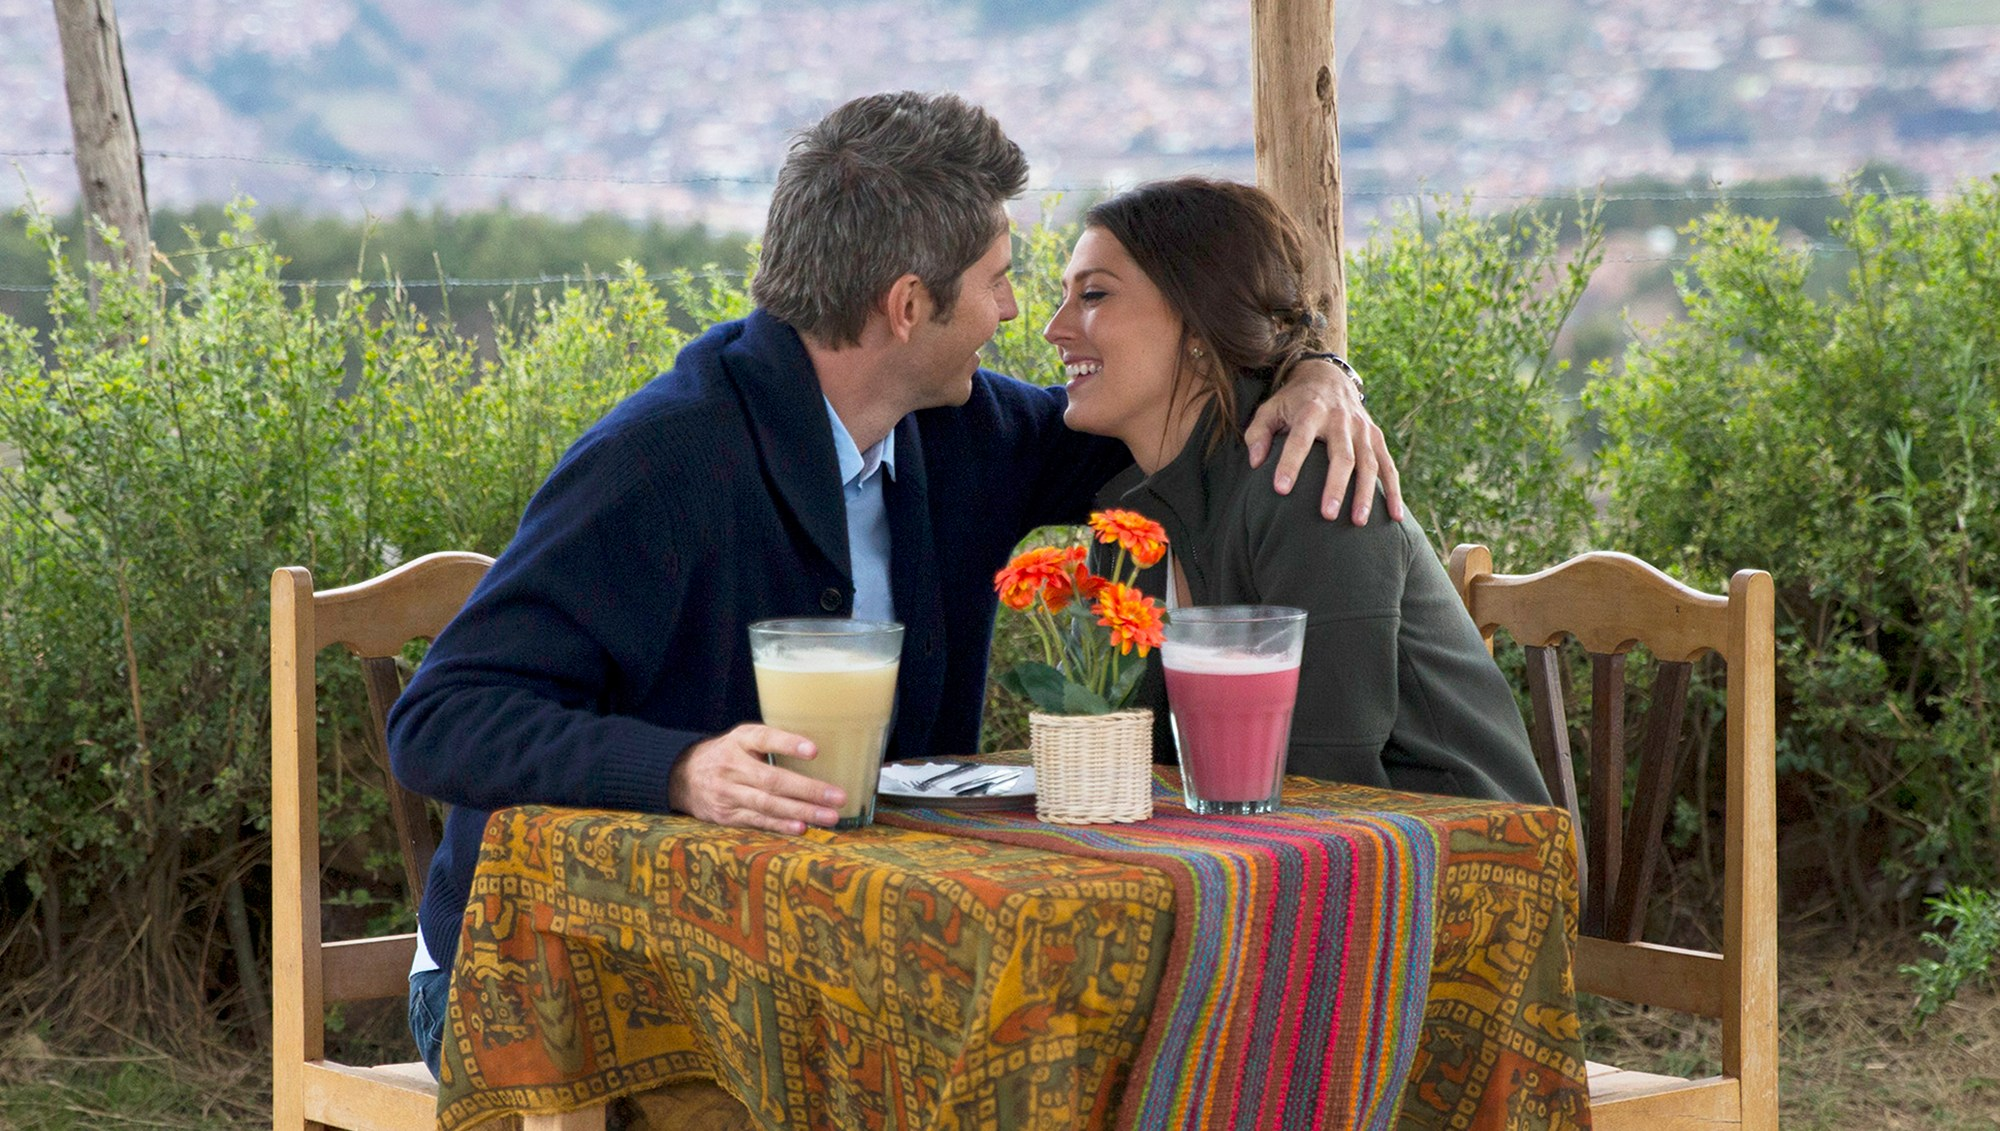 Arie Luyendyk Jr. and Becca Kufrin on 'The Bachelor'